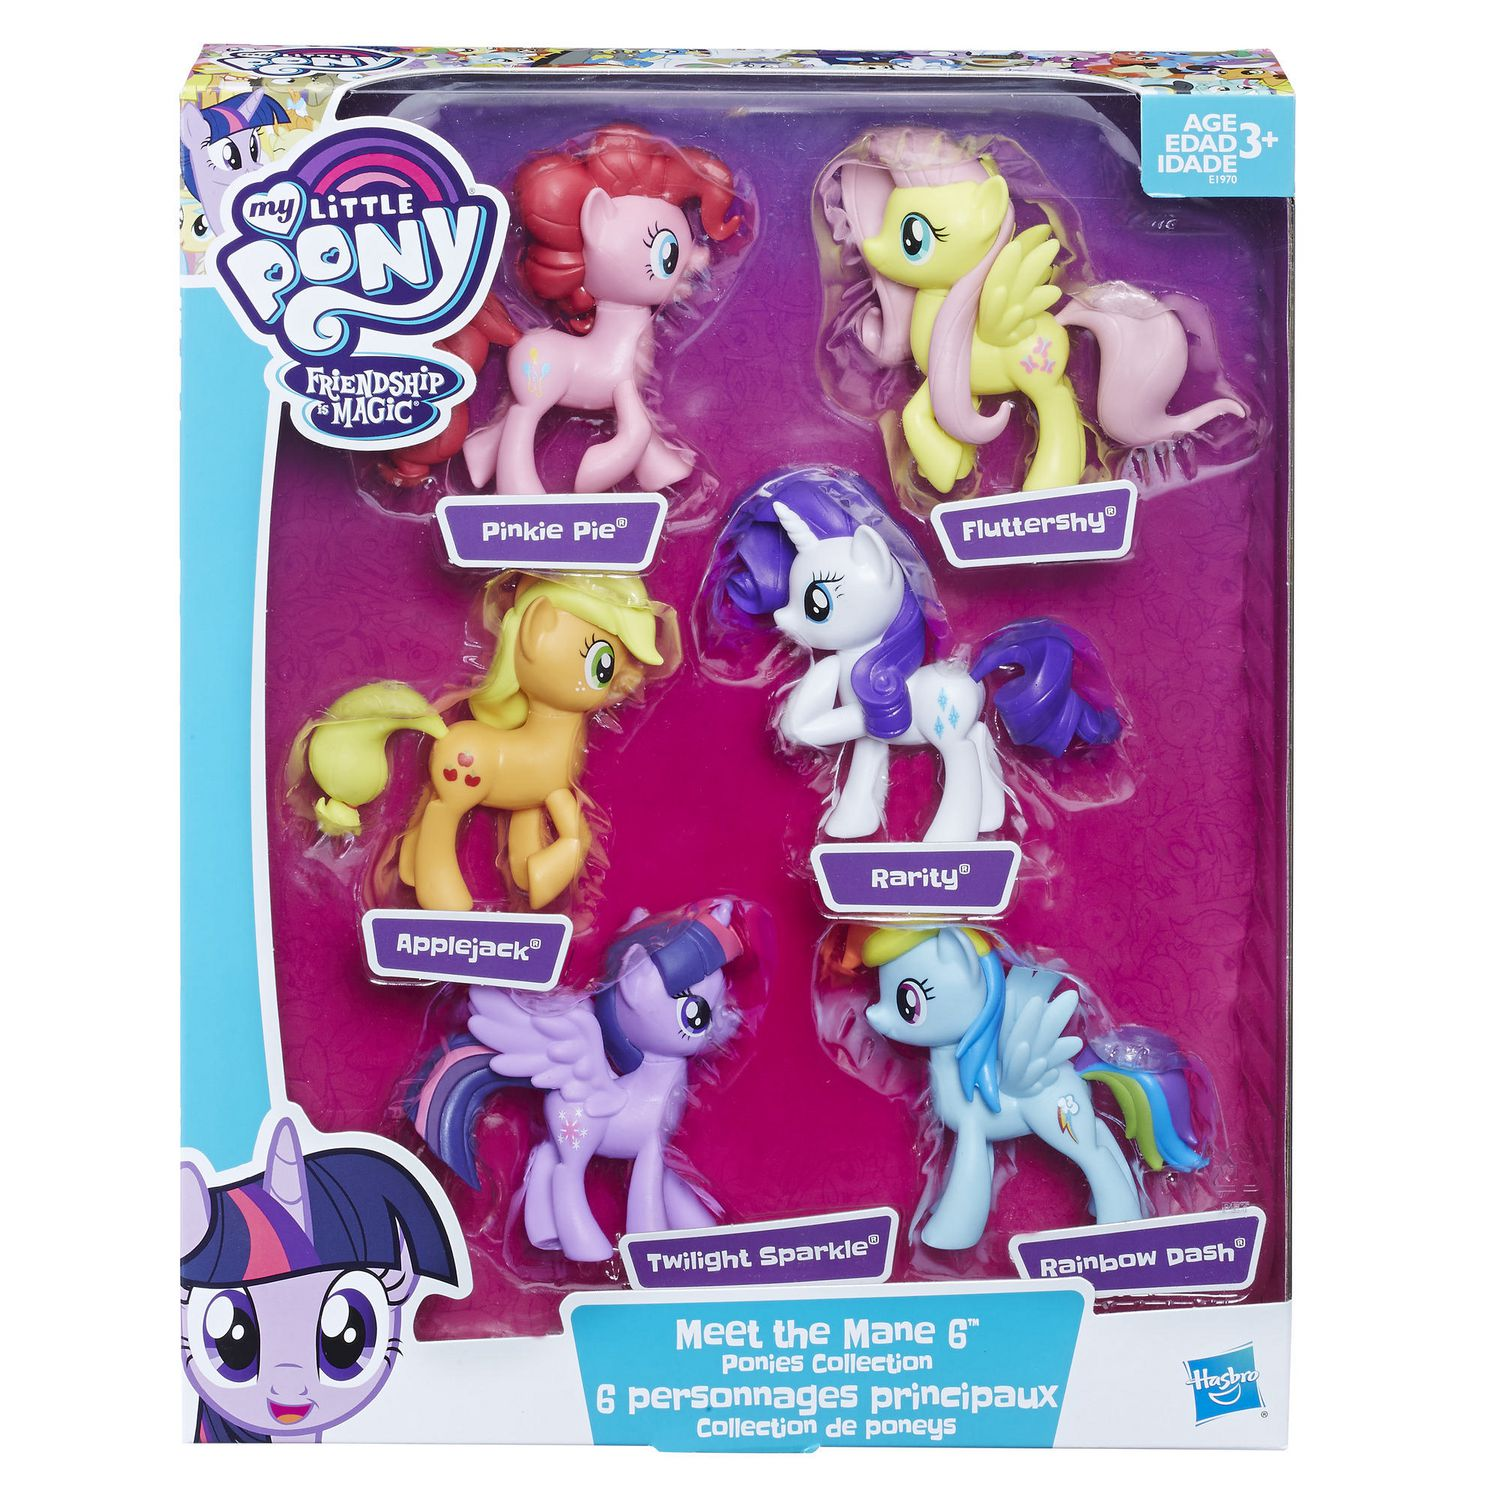 - My Little Pony Meet The Mane 6 Ponies Collection Walmart Canada